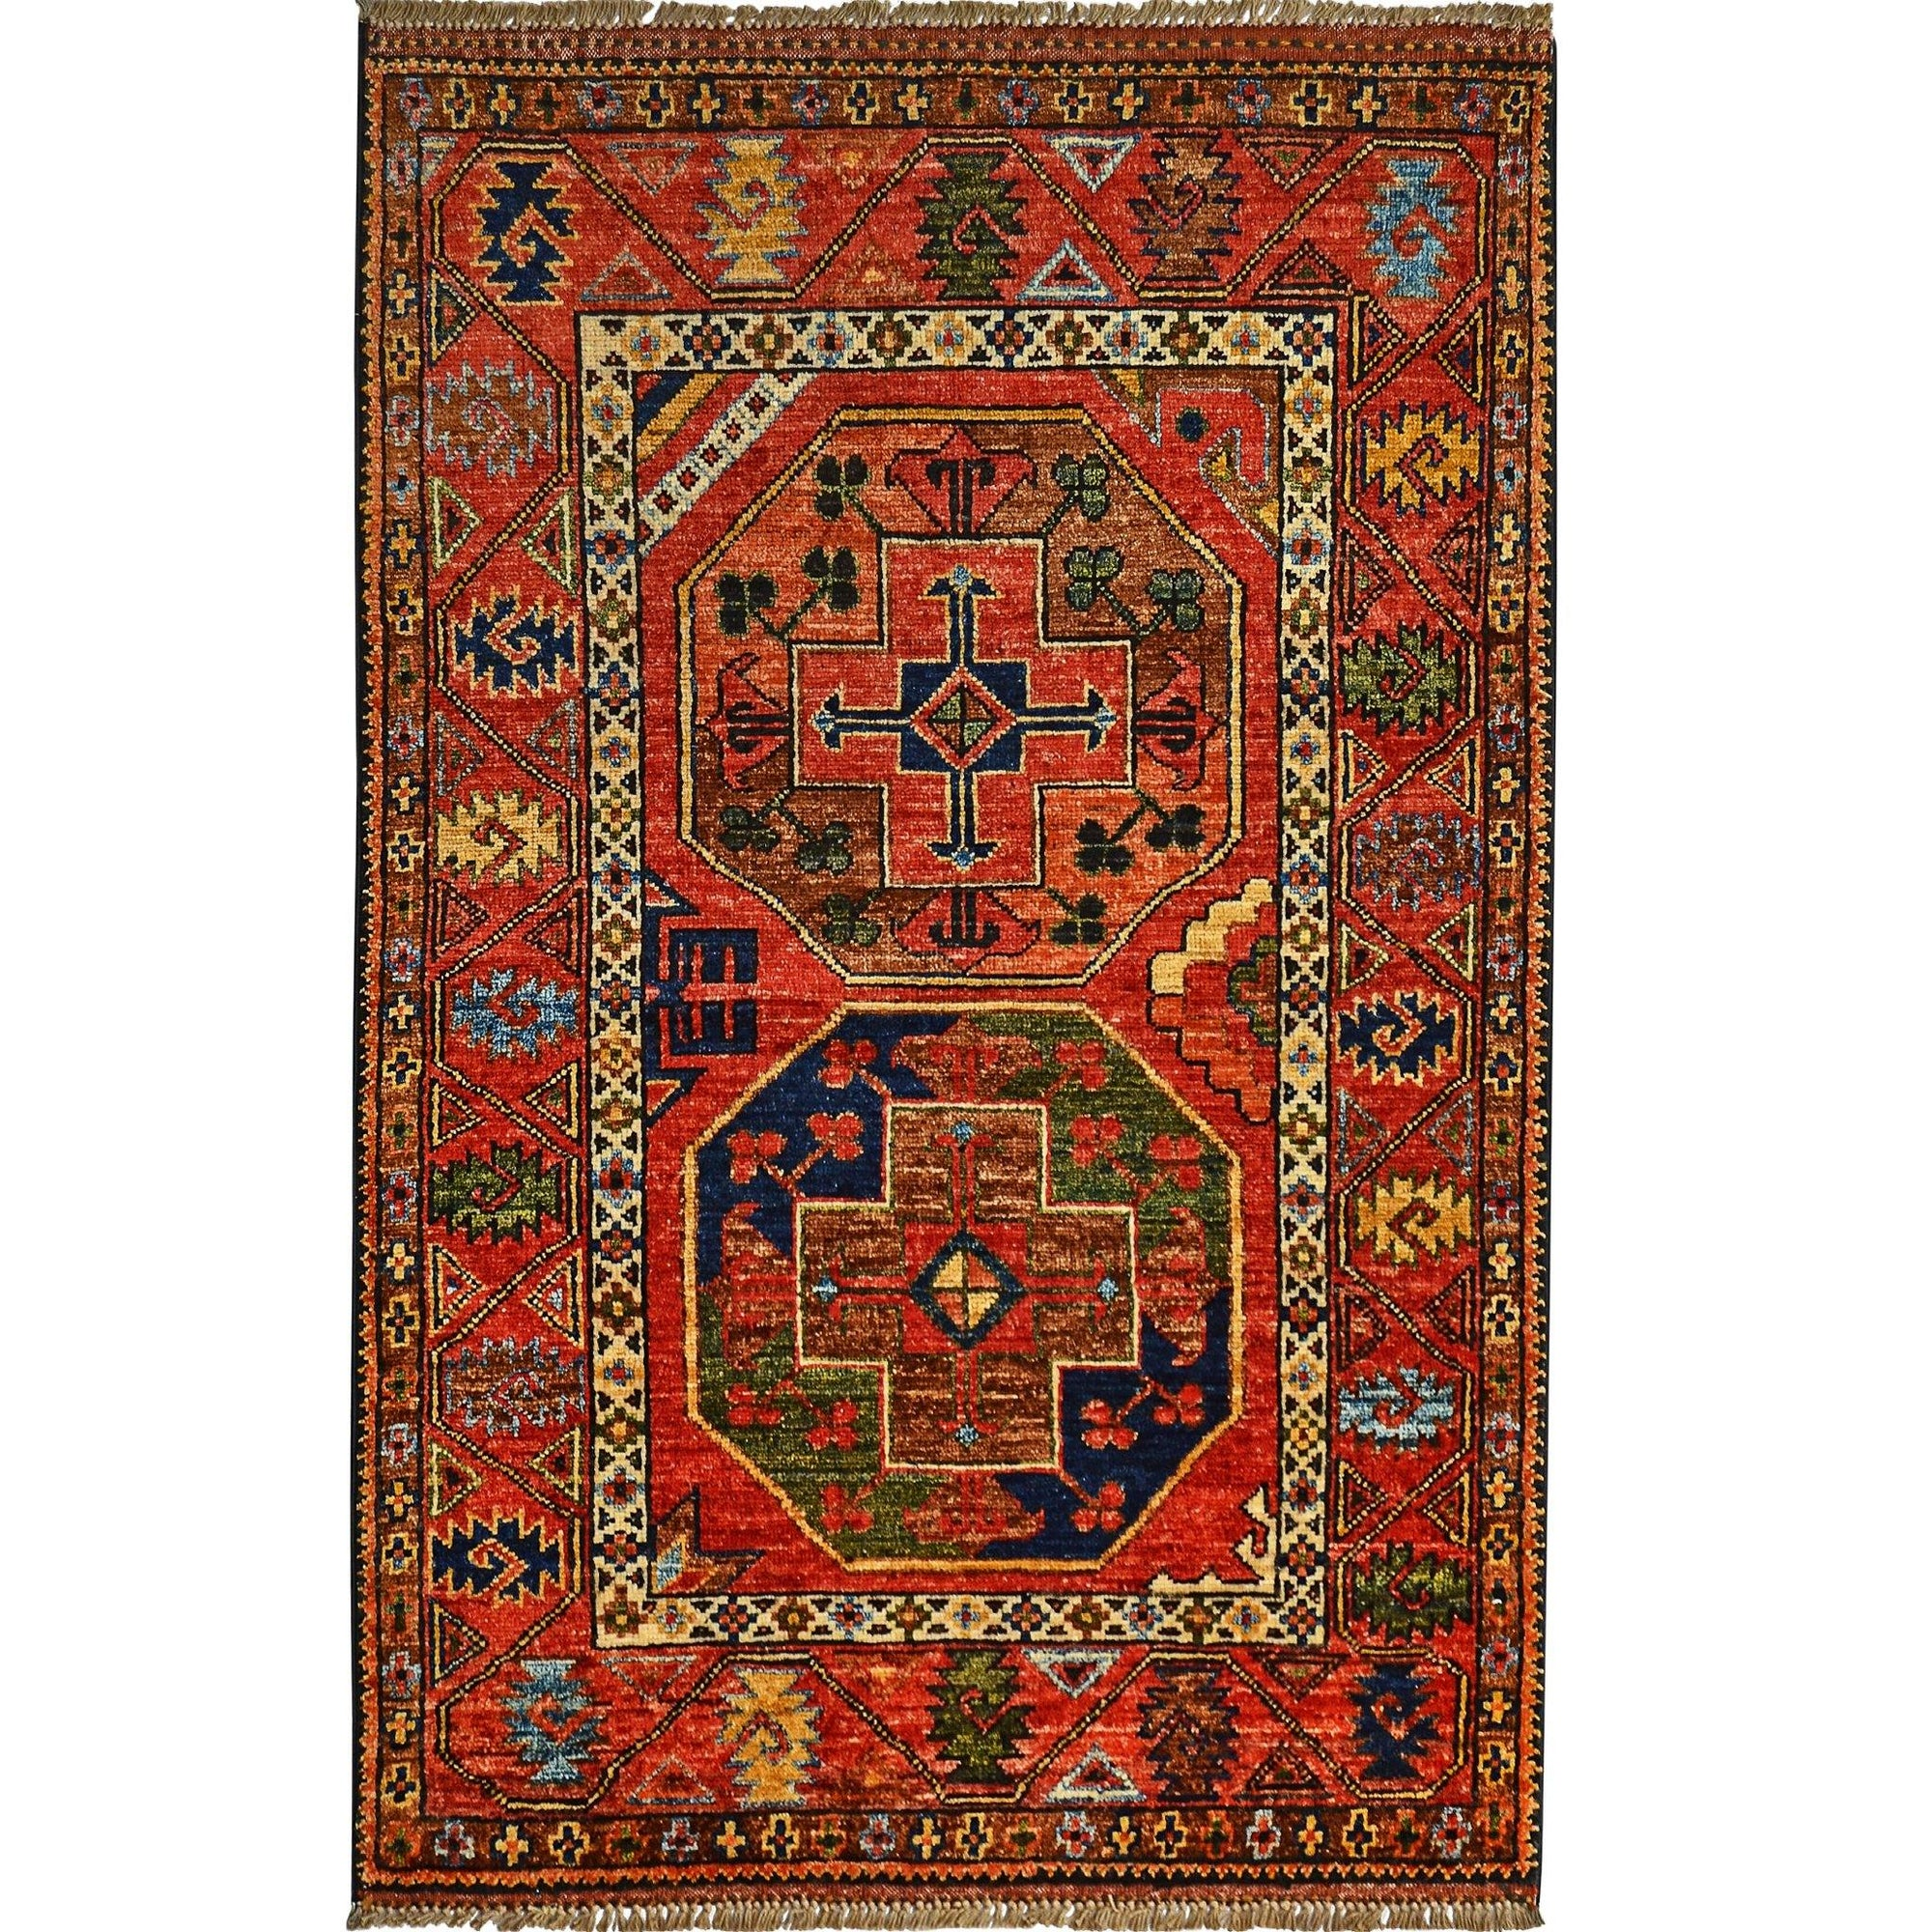 Fine Hand-knotted Wool Small Rug 86cm x 128cm Persian-Rug | House-of-Haghi | NewMarket | Auckland | NZ | Handmade Persian Rugs | Hand Knotted Persian Rugs